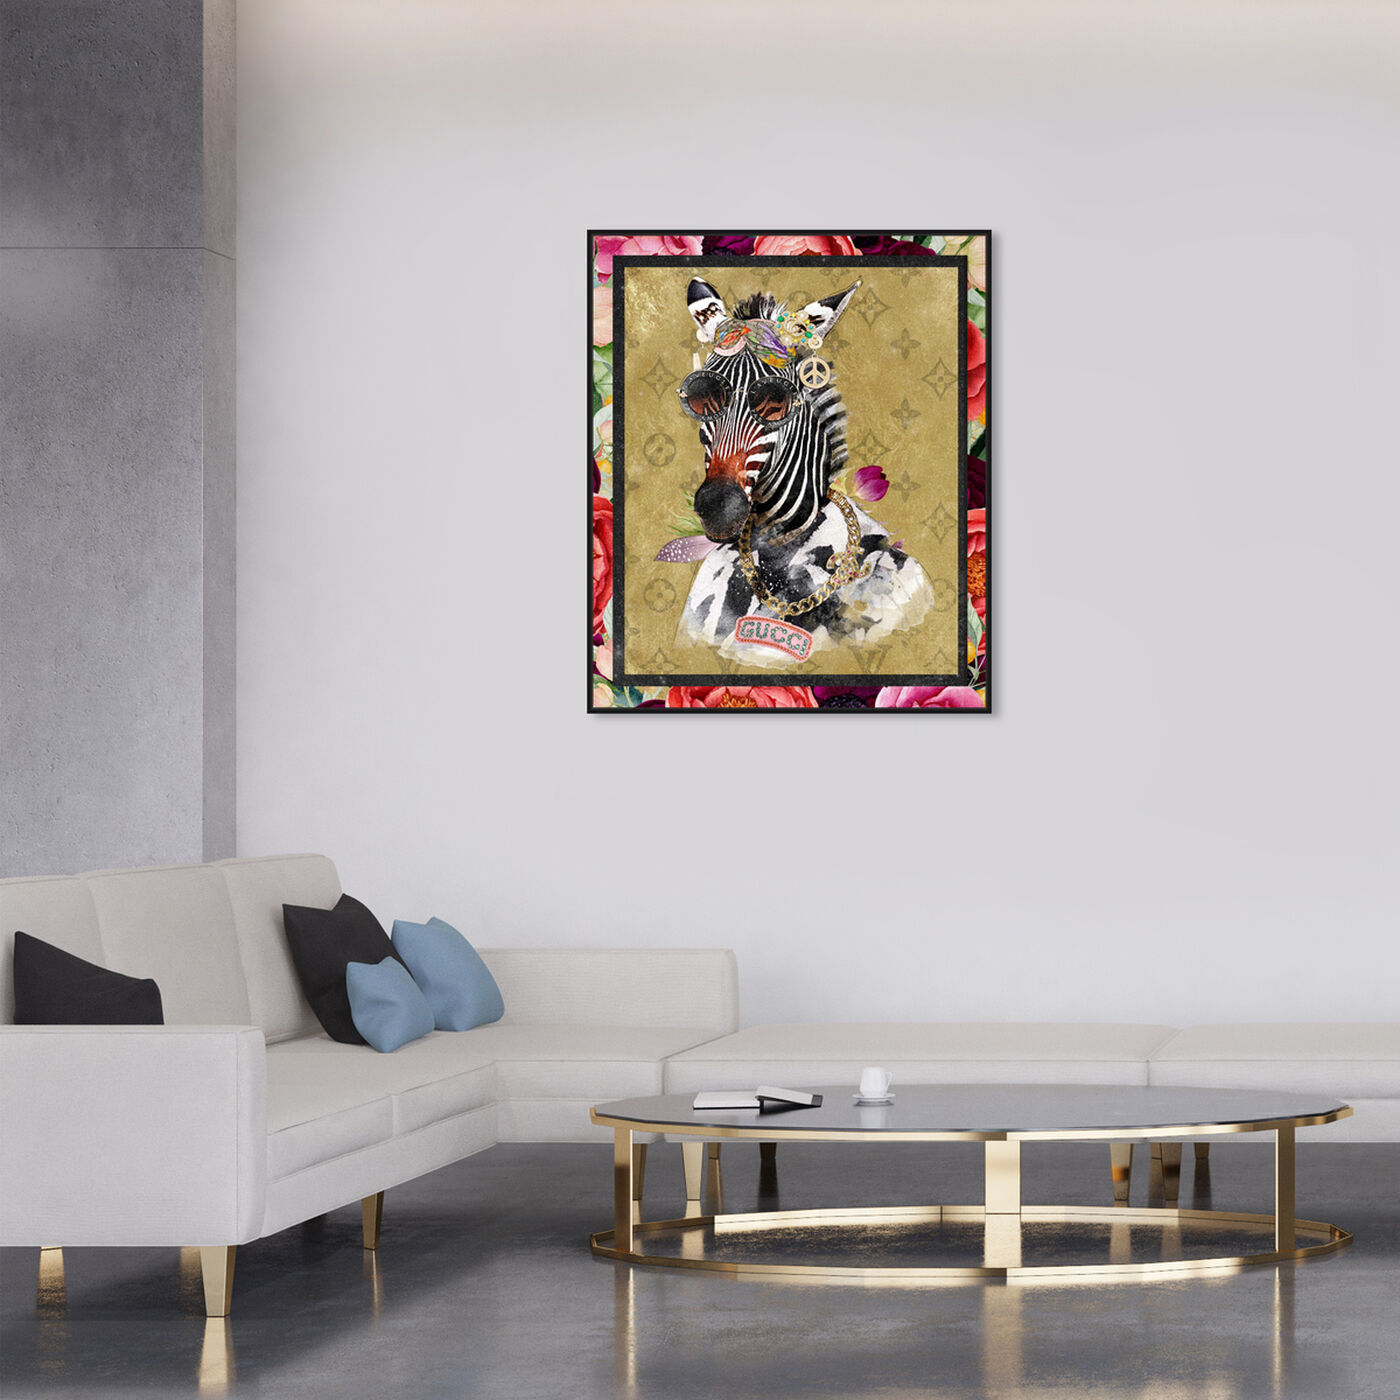 Hanging view of Luxe Aunt Portrait featuring animals and zoo and wild animals art.